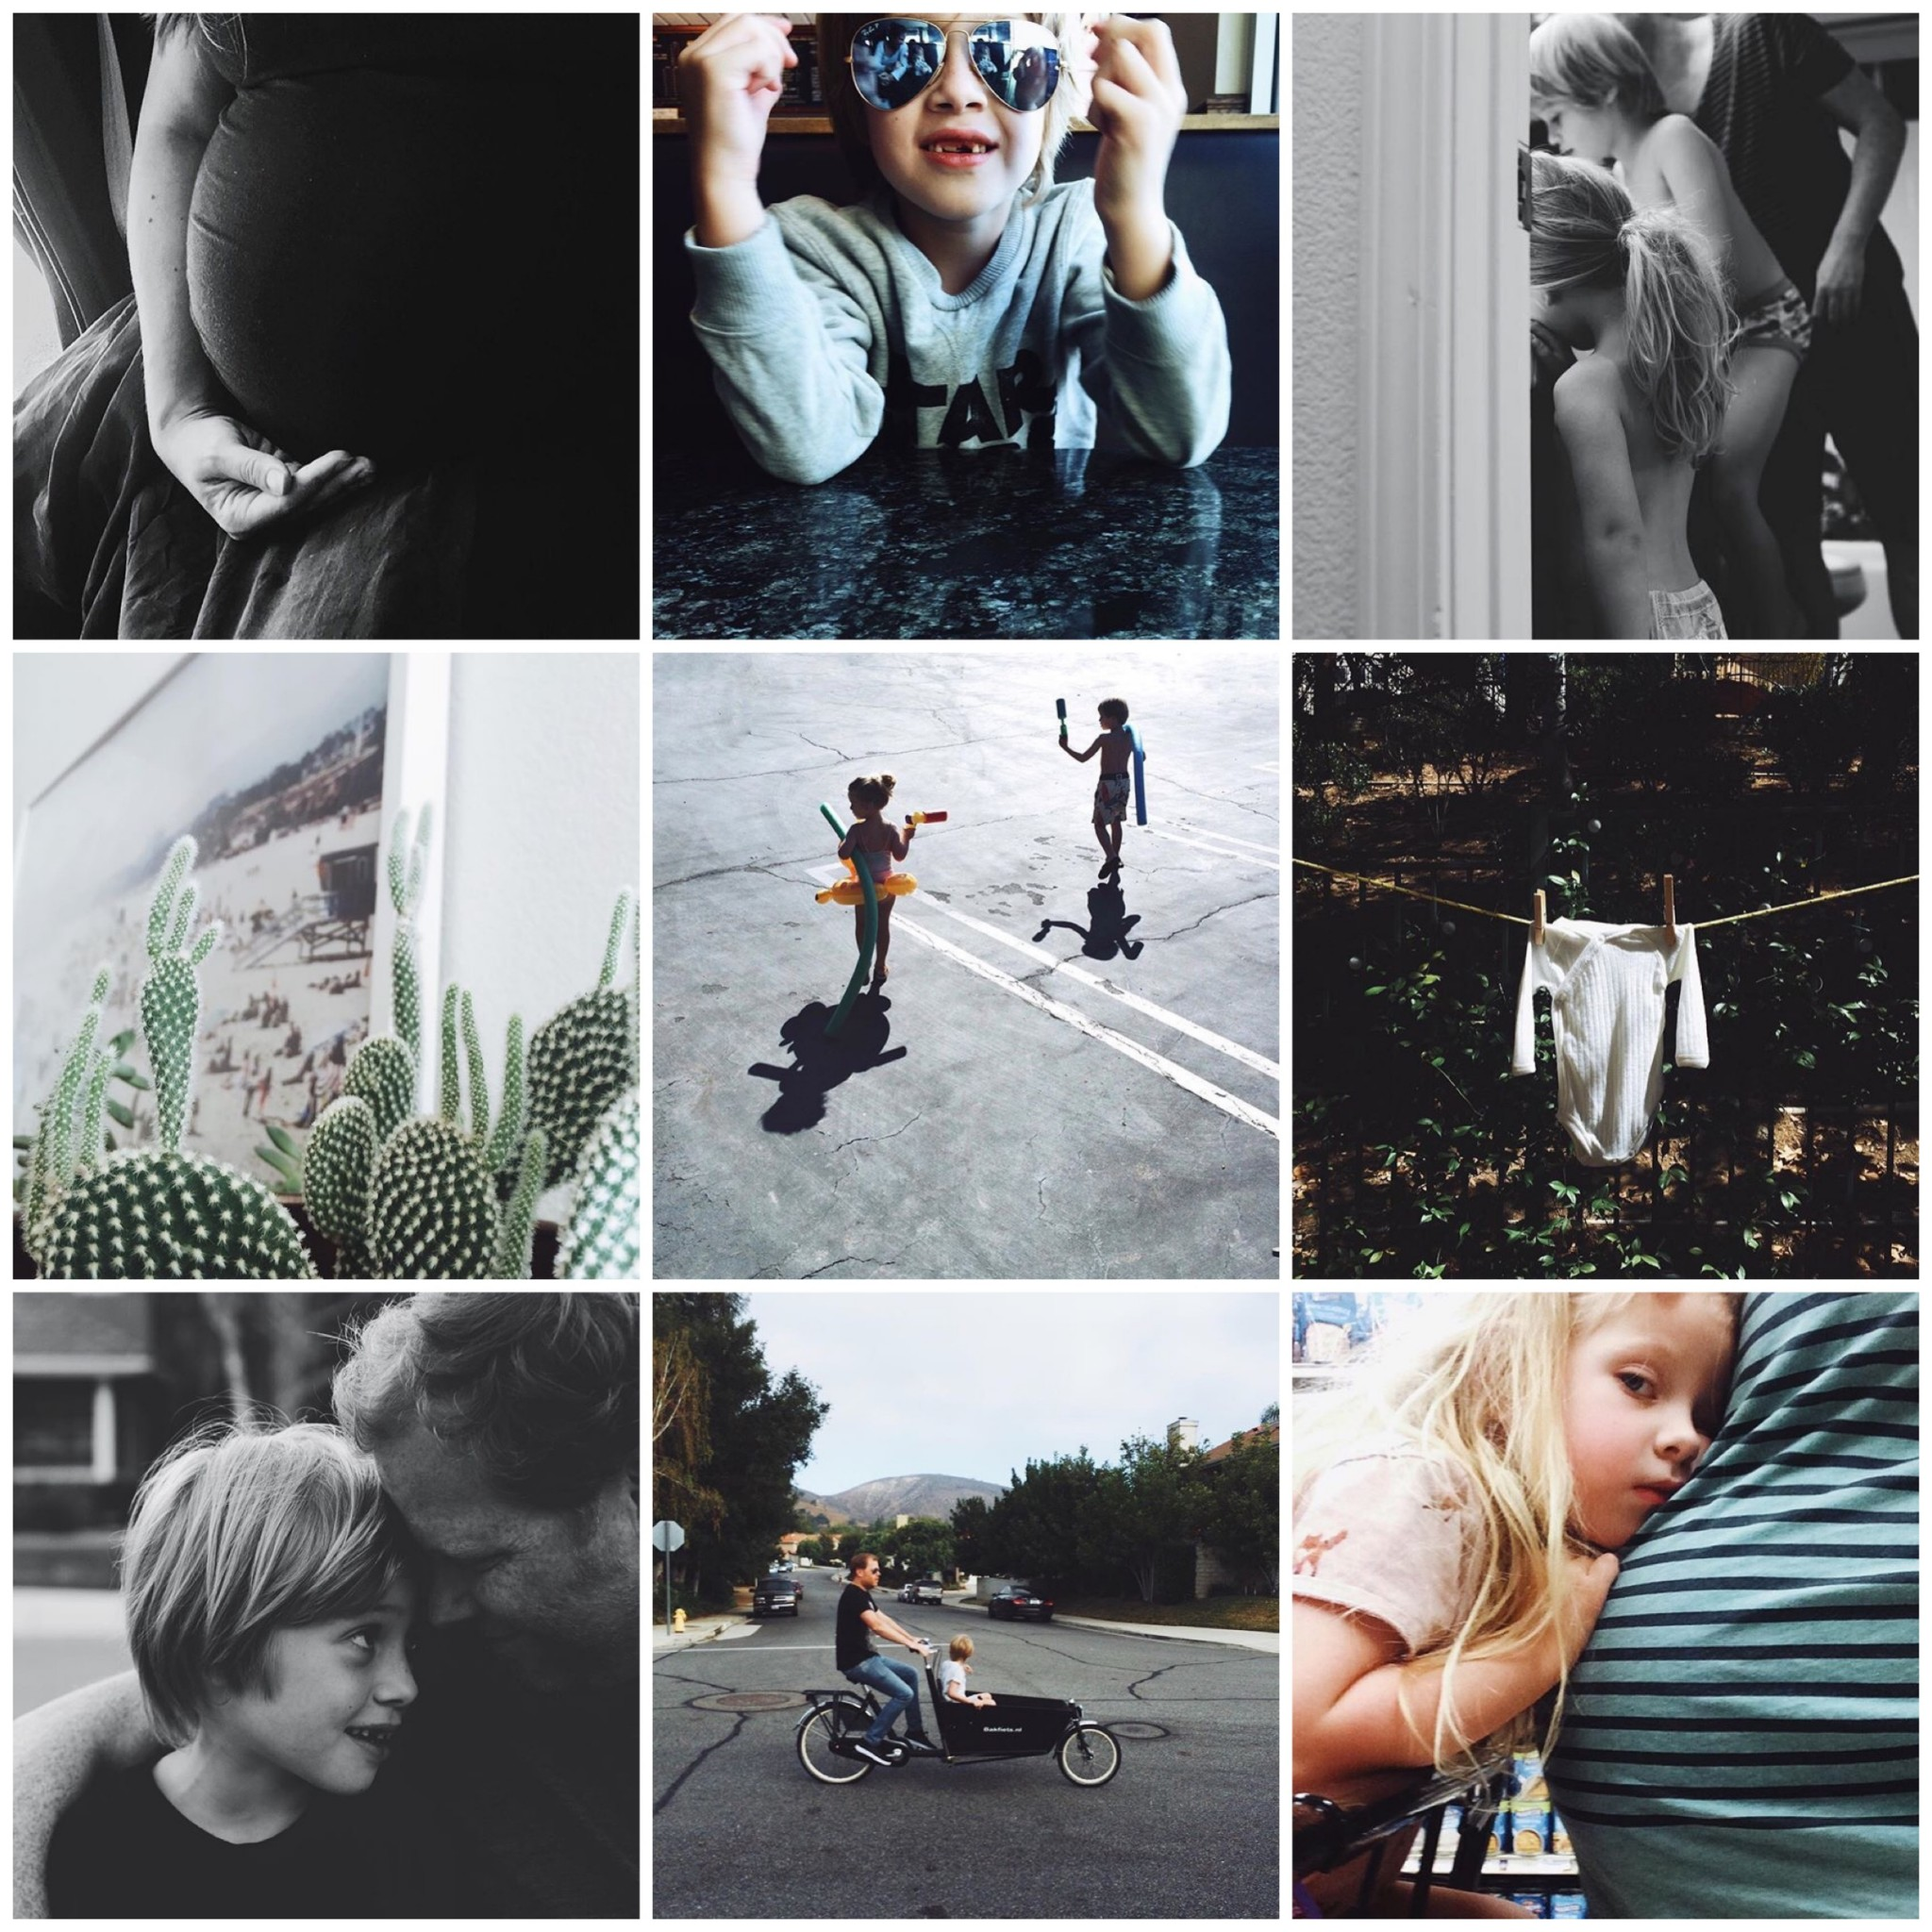 August on instagram @madebylon